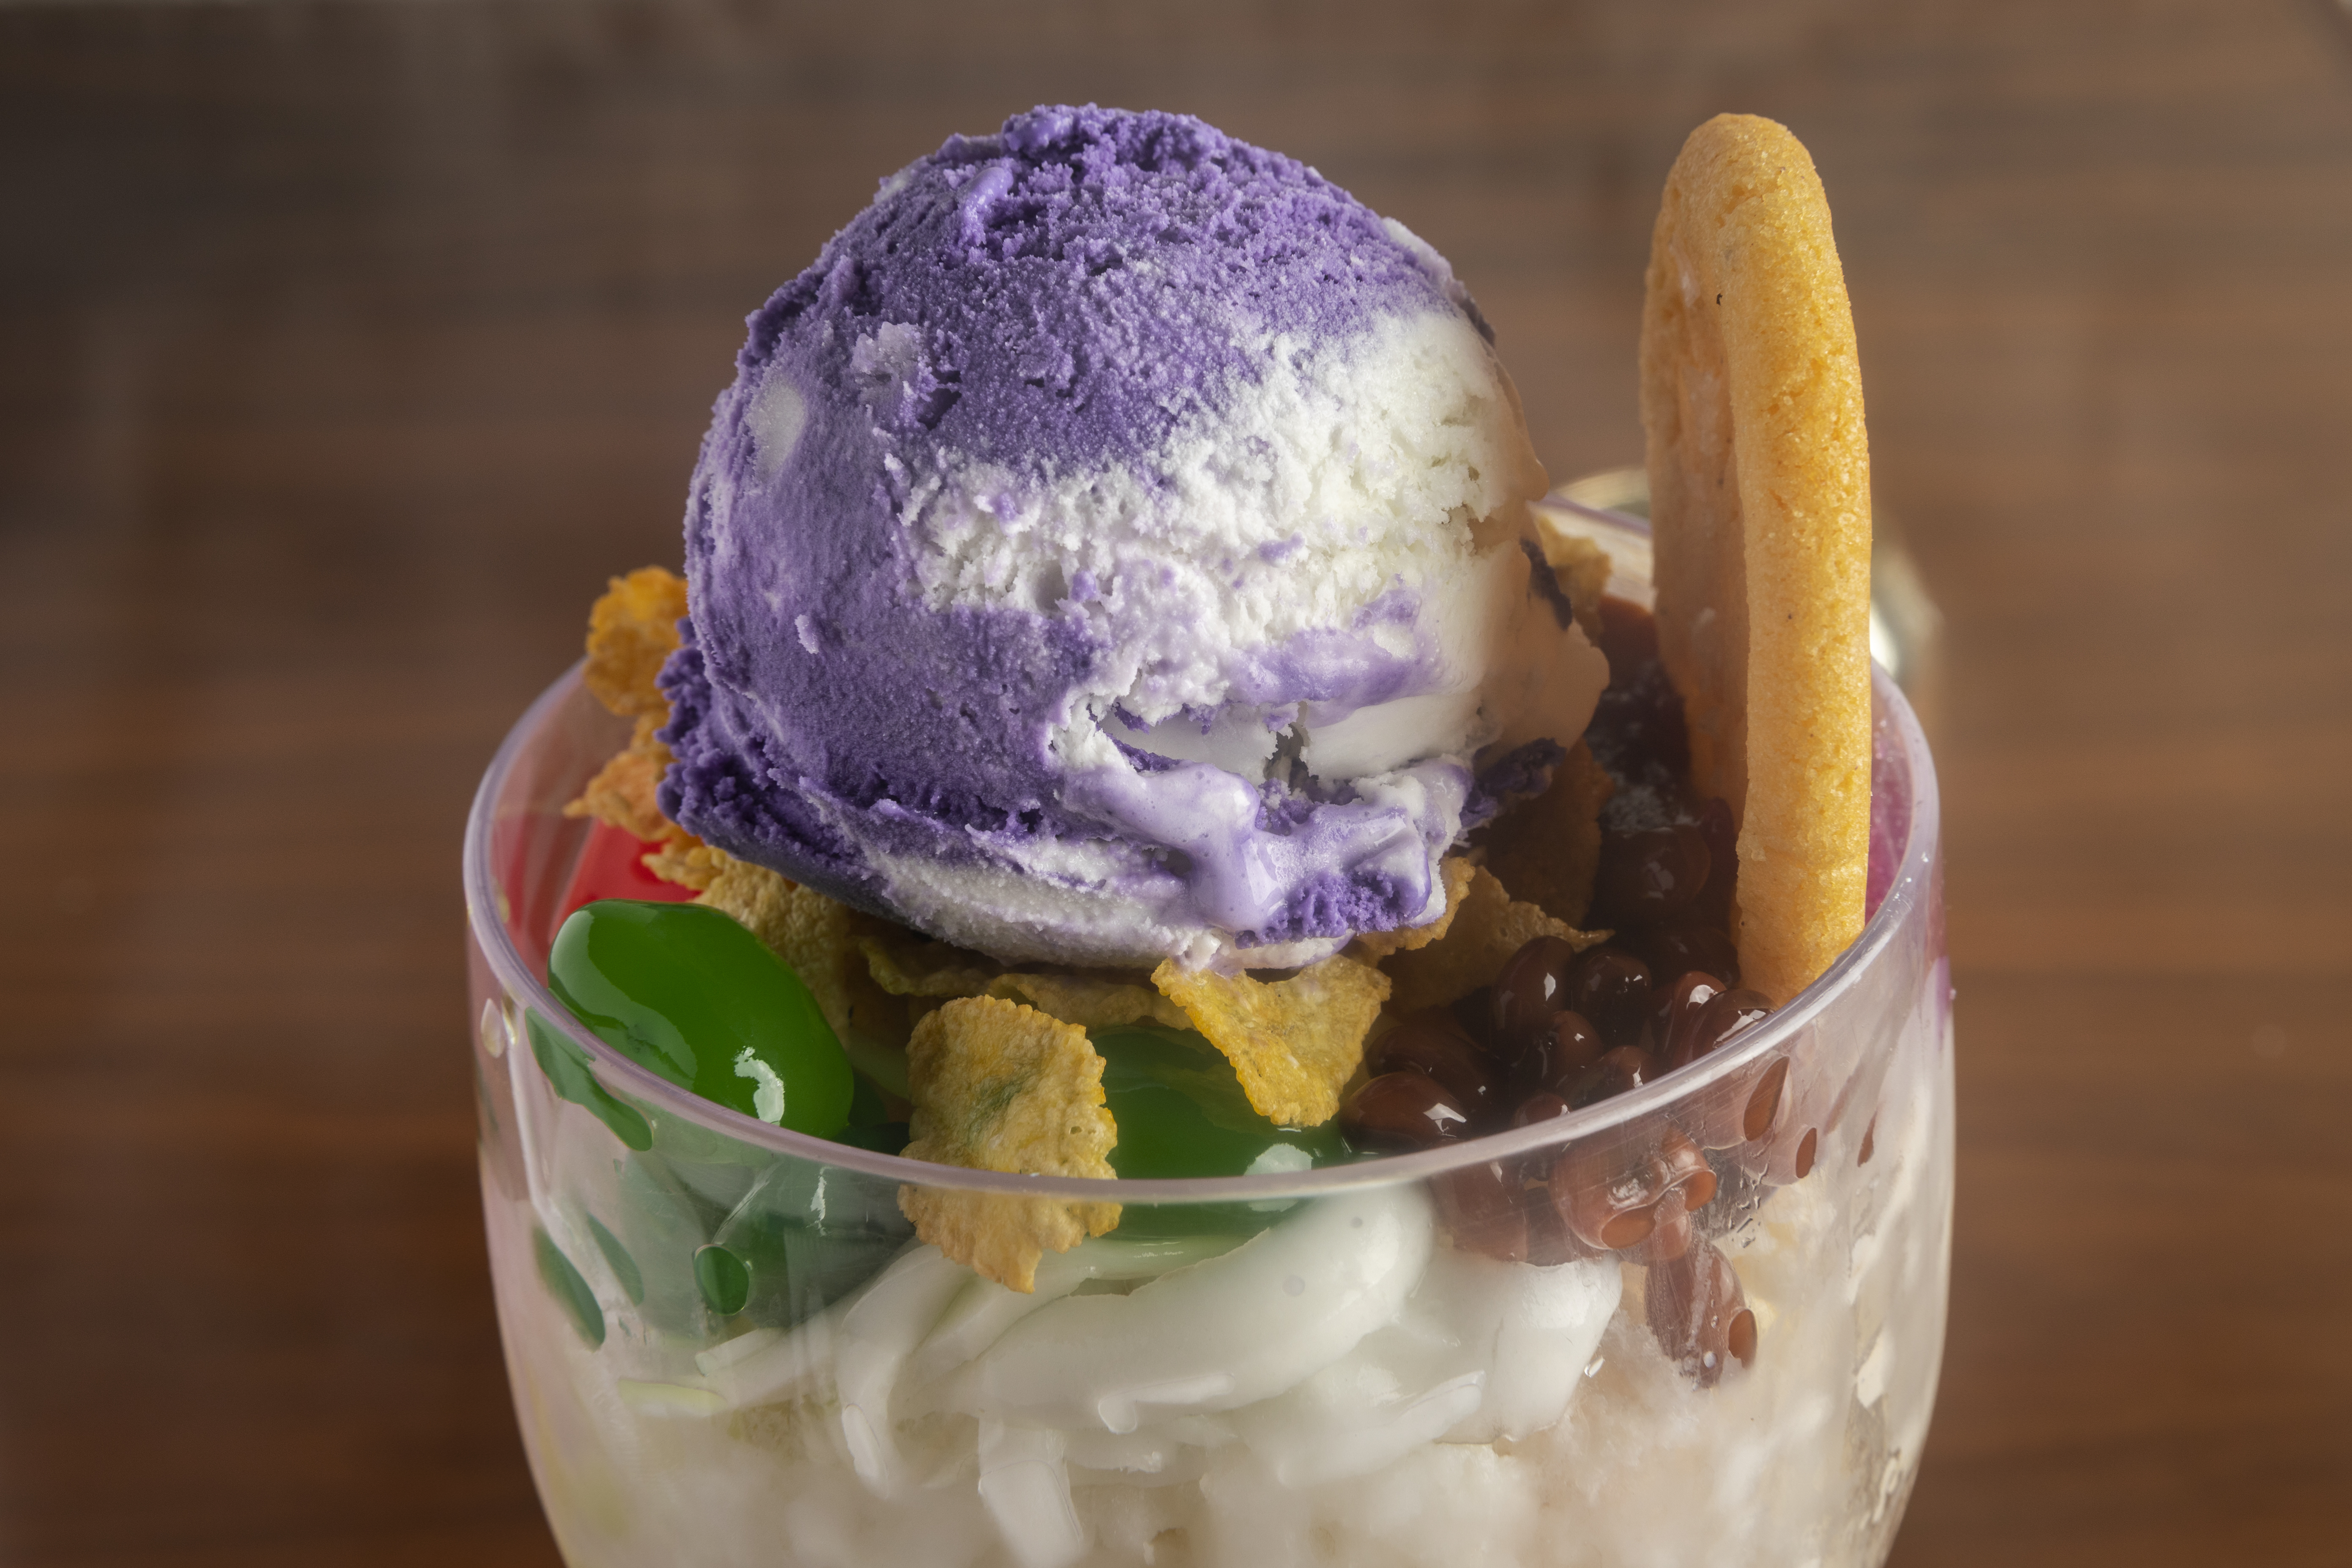 A close-up view of Filipino dessert halo halo, a scoop of purple and white ice cream on top of a pile of multi-colored jellies.